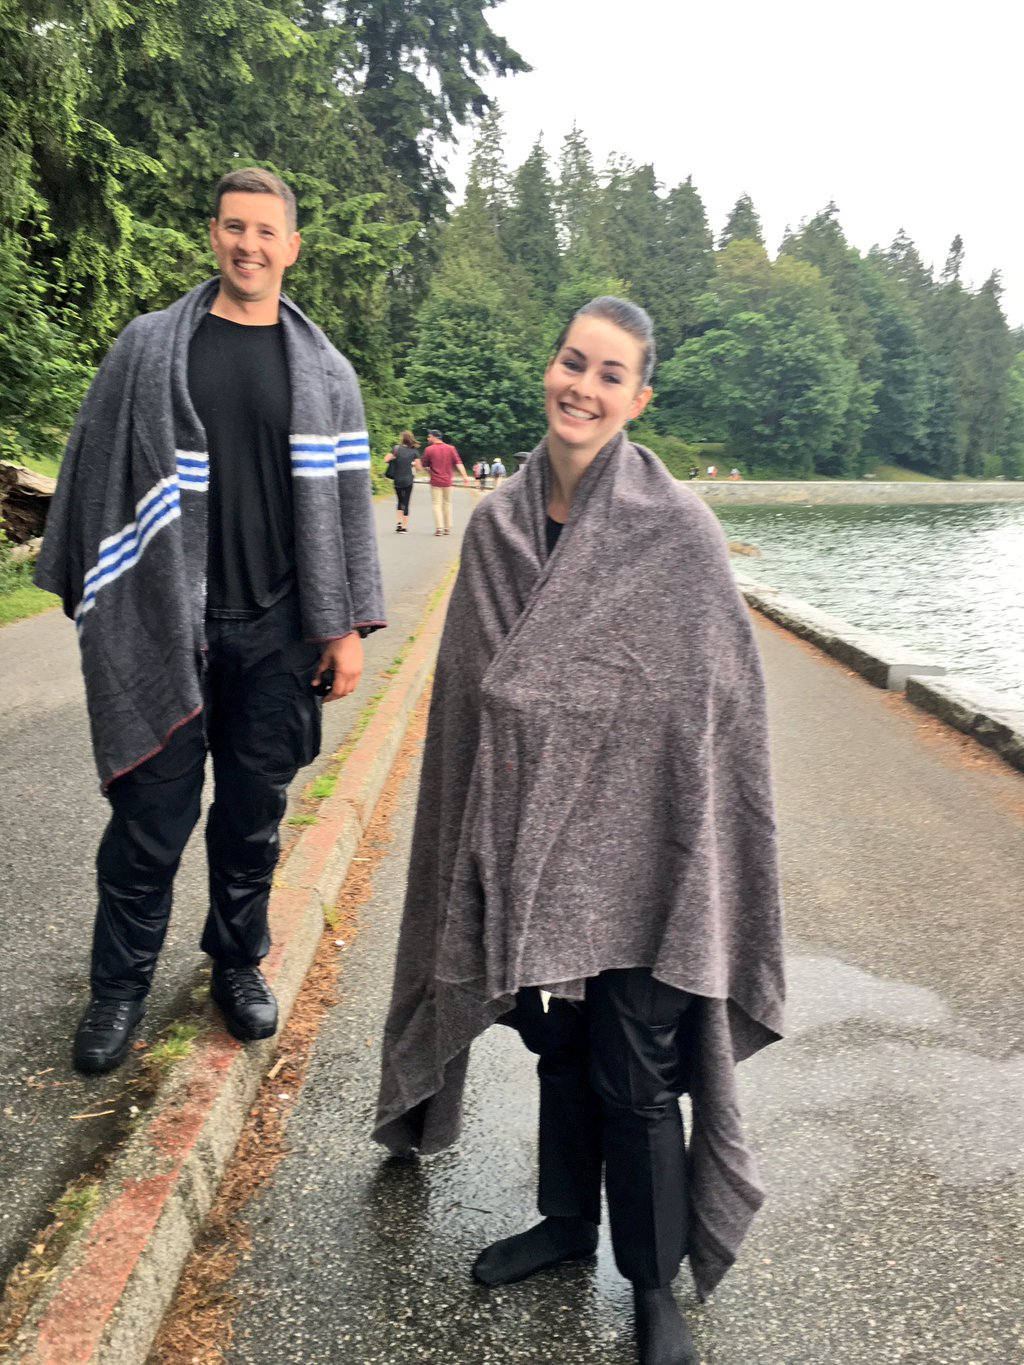 These two Vancouver Police officers dived into Burrard Inlet to save a man in distress.